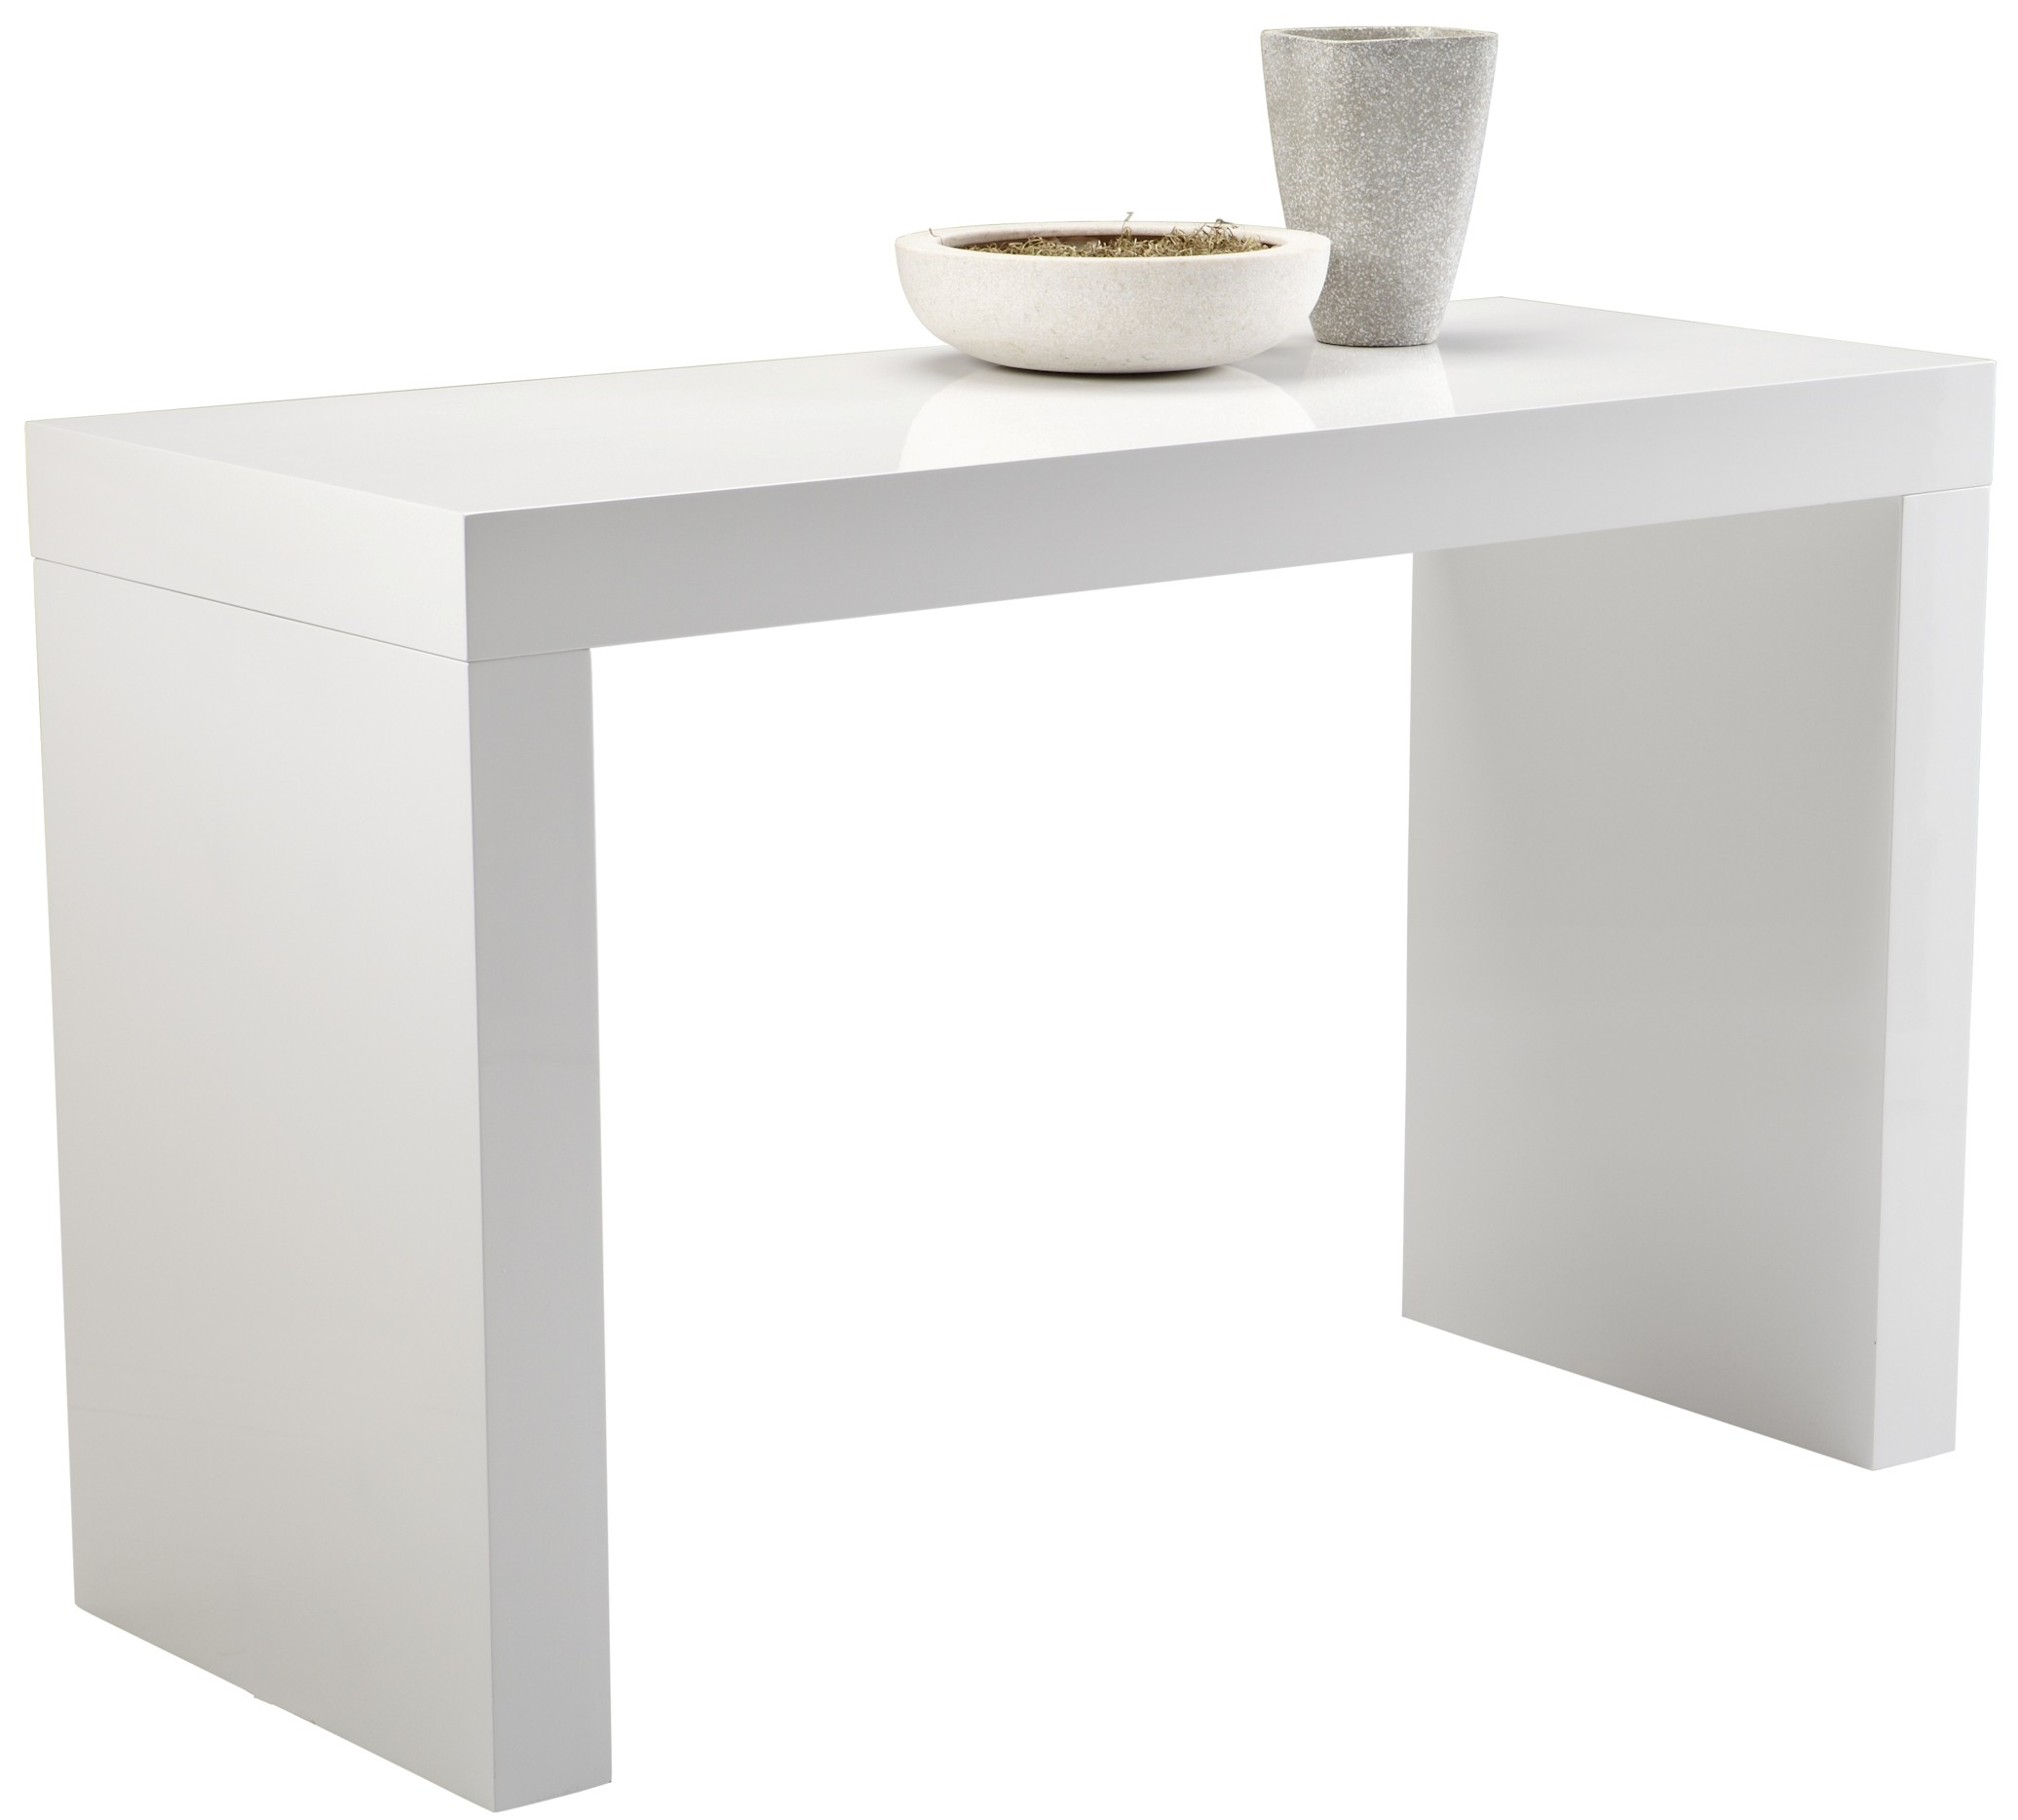 Faro White High Gloss C Shape Bar Table From Sunpan 50257